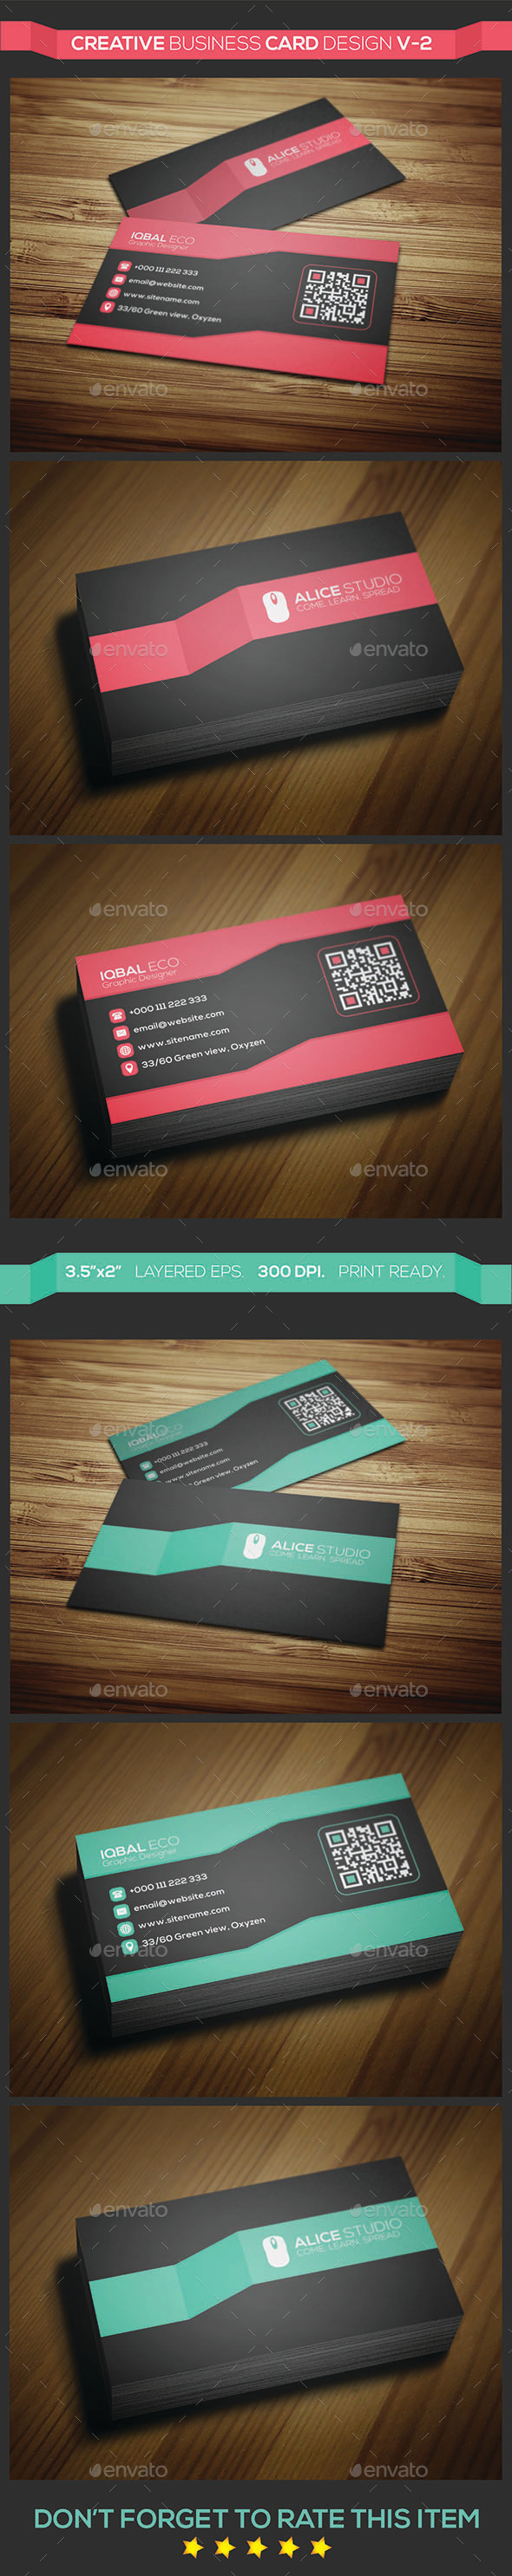 GraphicRiver Creative Business Card Design V-2 9021941